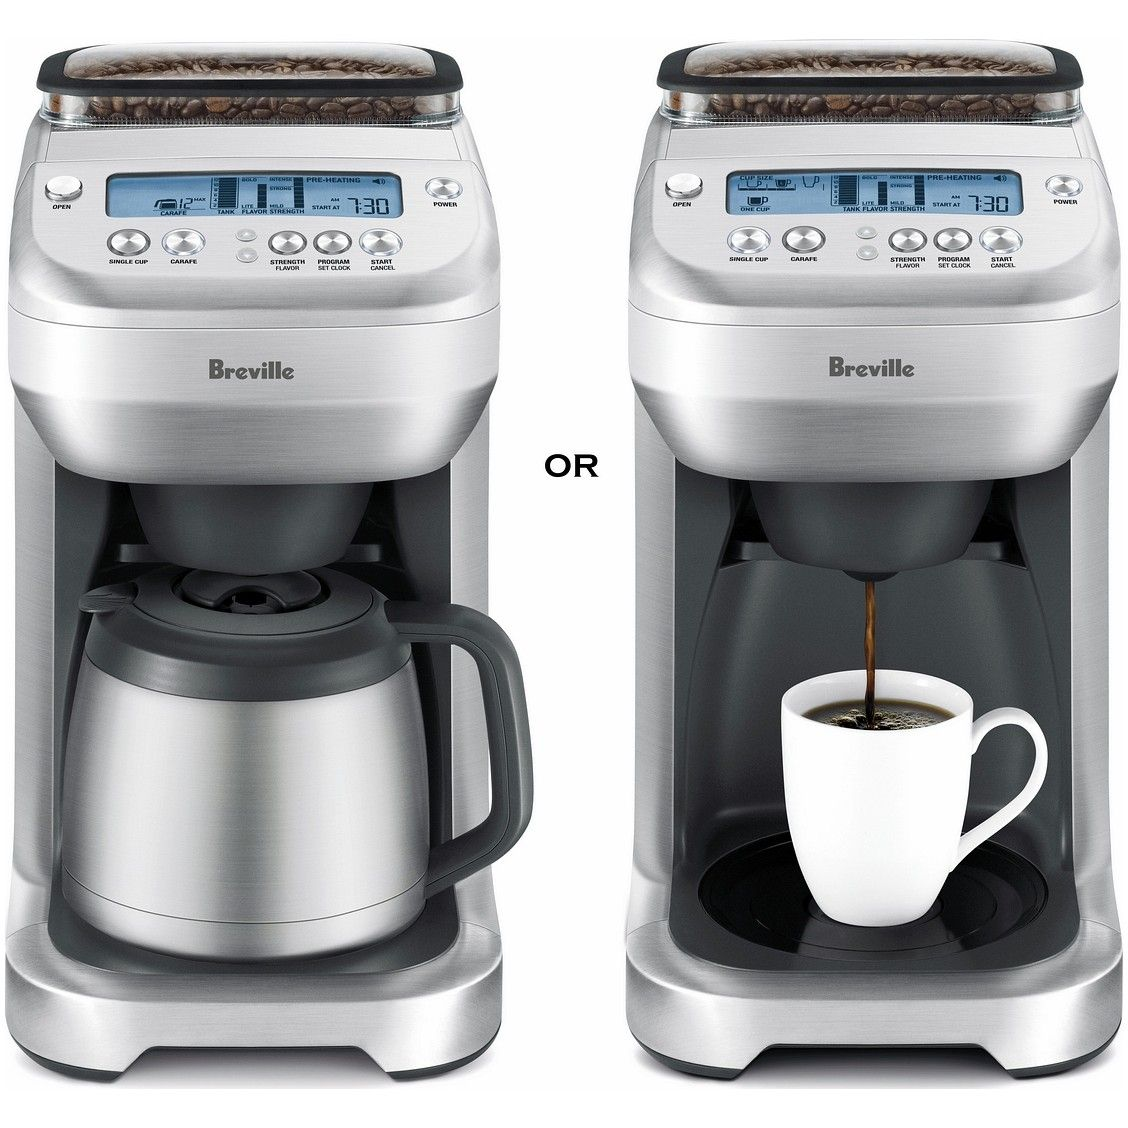 Coffee Maker W/ Grinder One Cup or Carafe You Brew Coffee